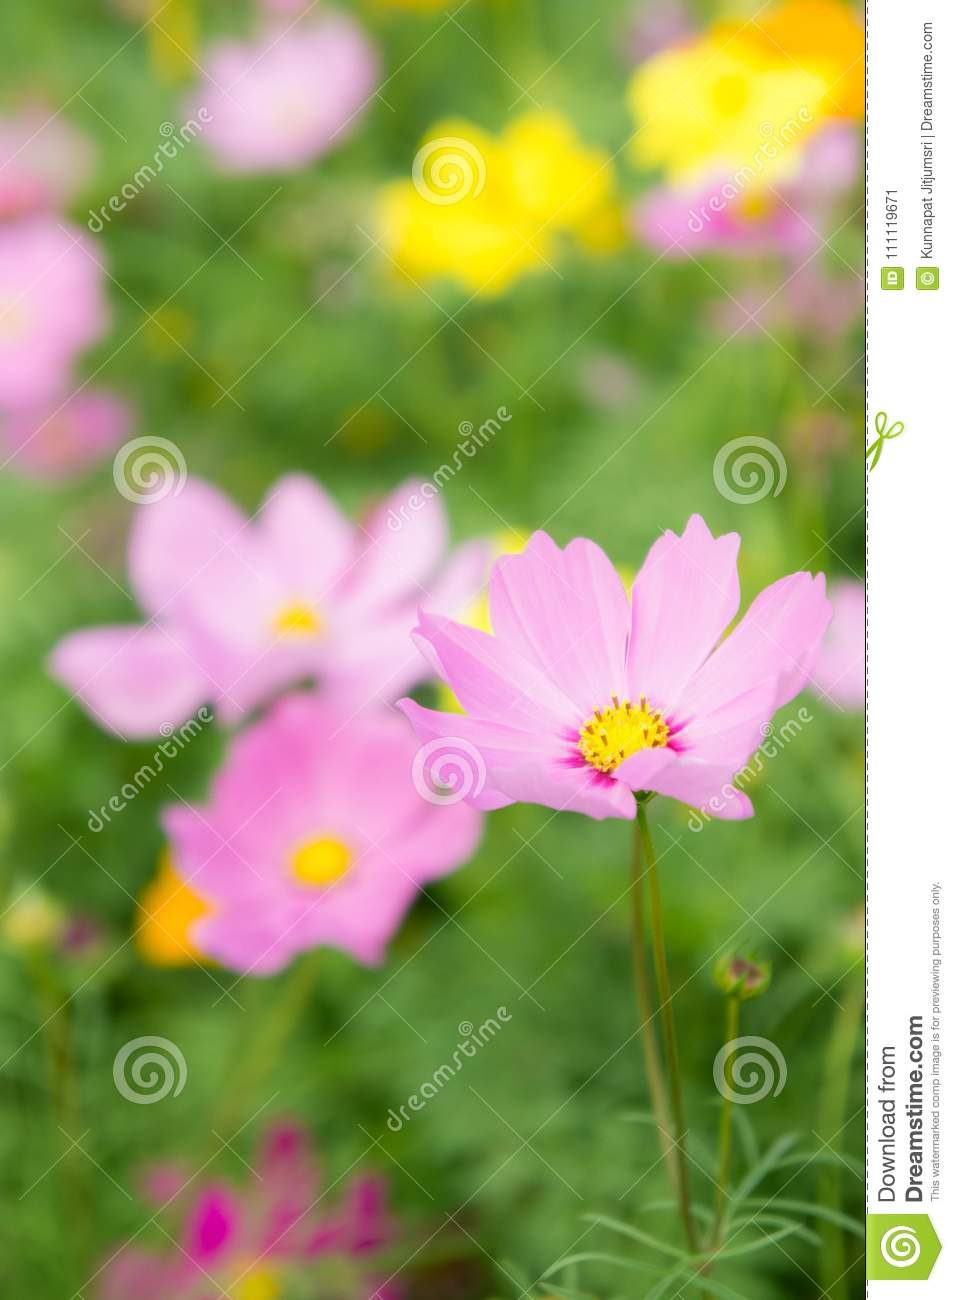 The nice day and nice flowers cosmos colorful on field pink flowers the nice day and nice flowers cosmos colorful on field pink flowers daisy flowers nature garden izmirmasajfo